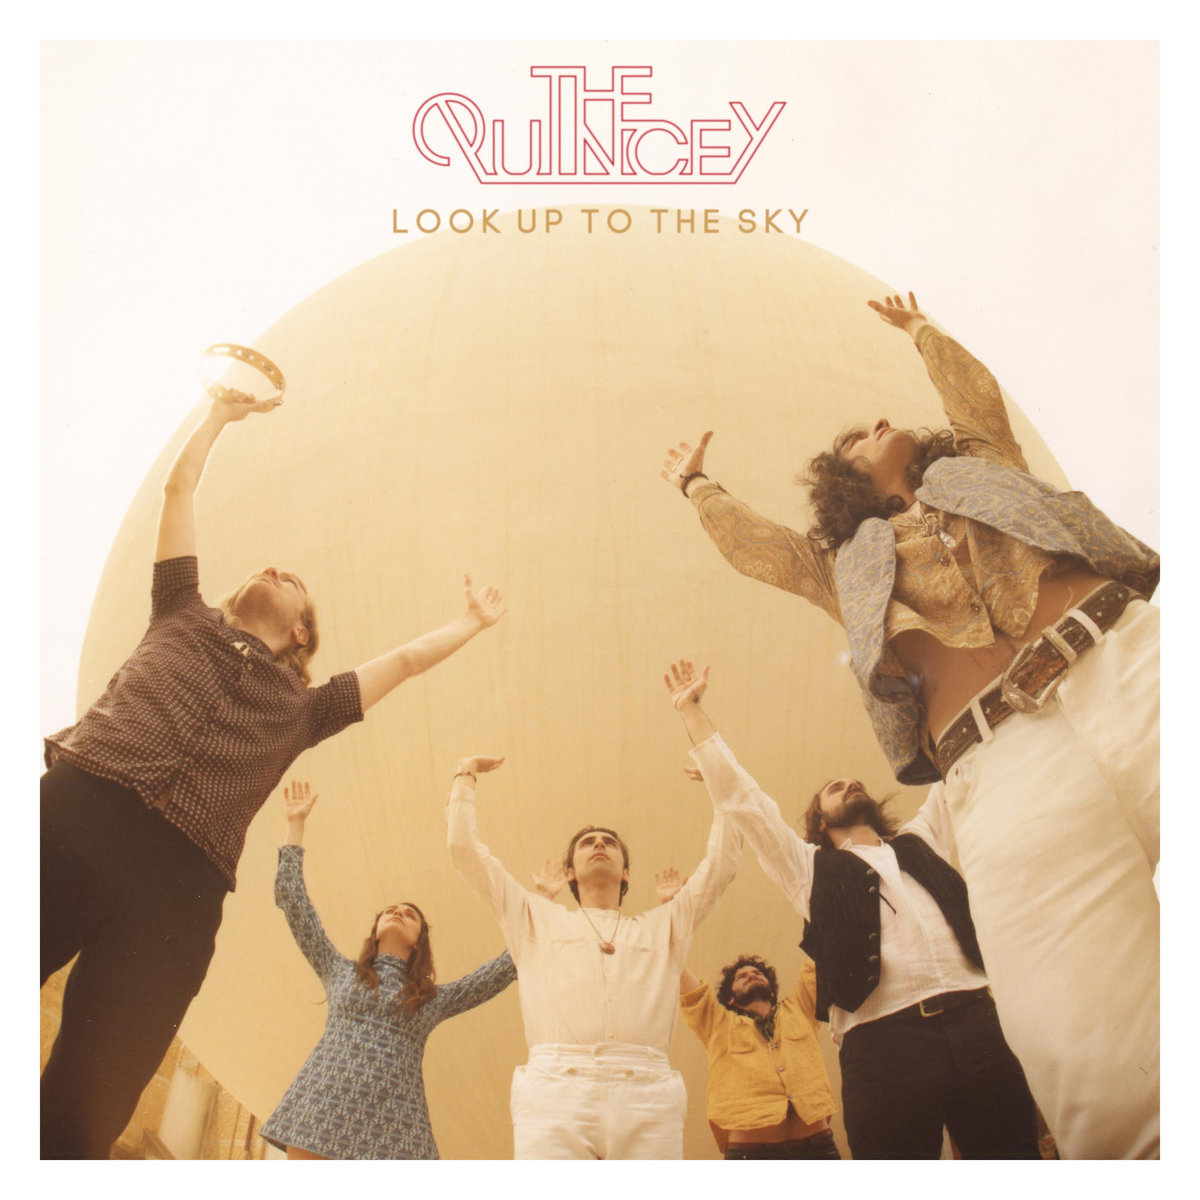 The Quincey - Monday Moon @ 'Look Up To The Sky' album (alternative, united kingdom)